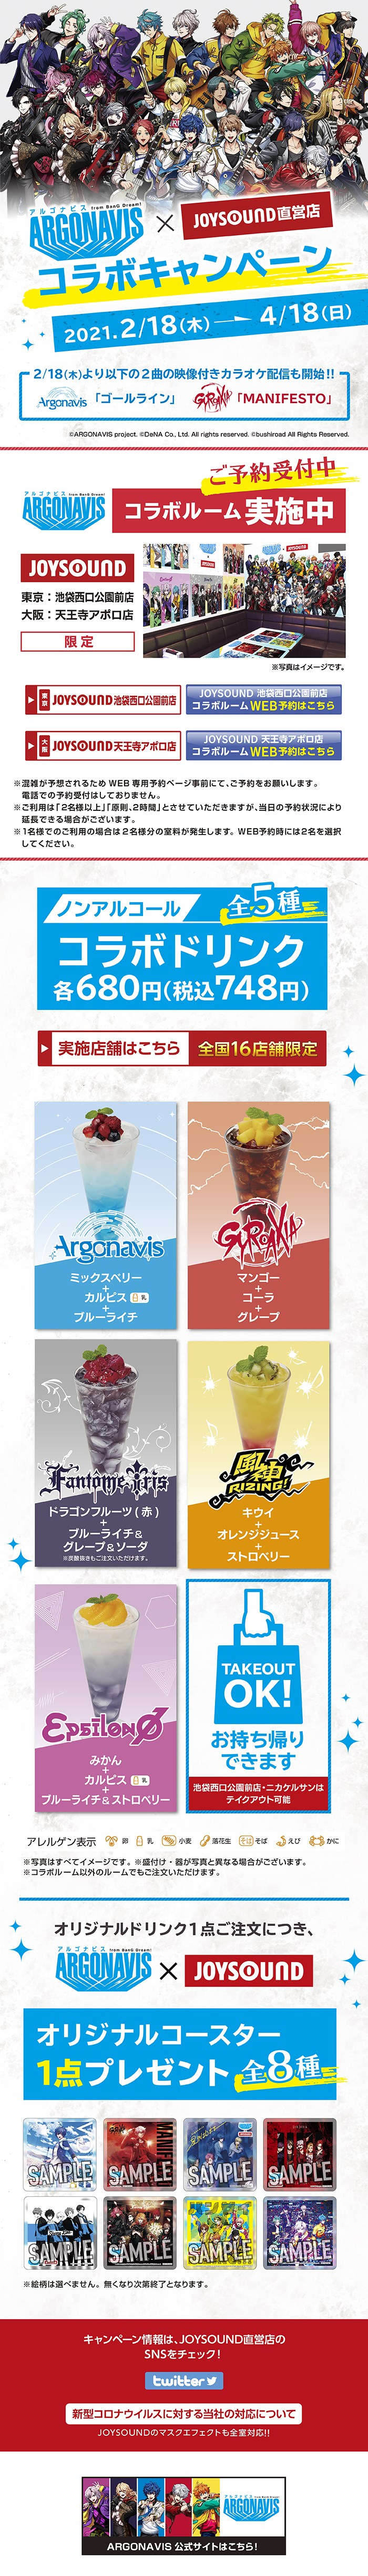 ARGONAVIS from BanG Dream!×JOYSOUND直営店コラボキャンペーン